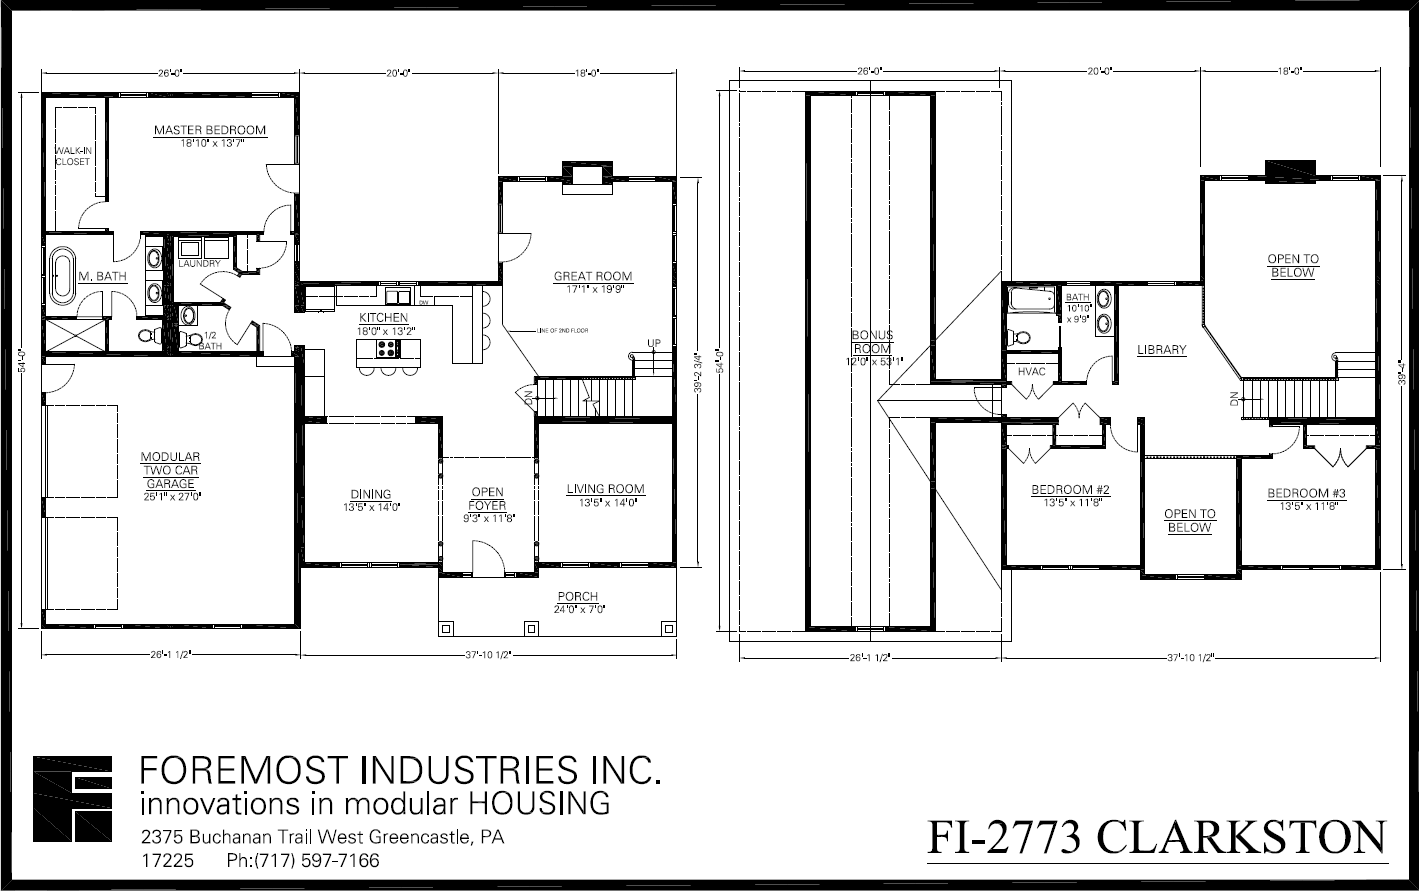 the new fi 2773 clarkston model home brought to you by foremost